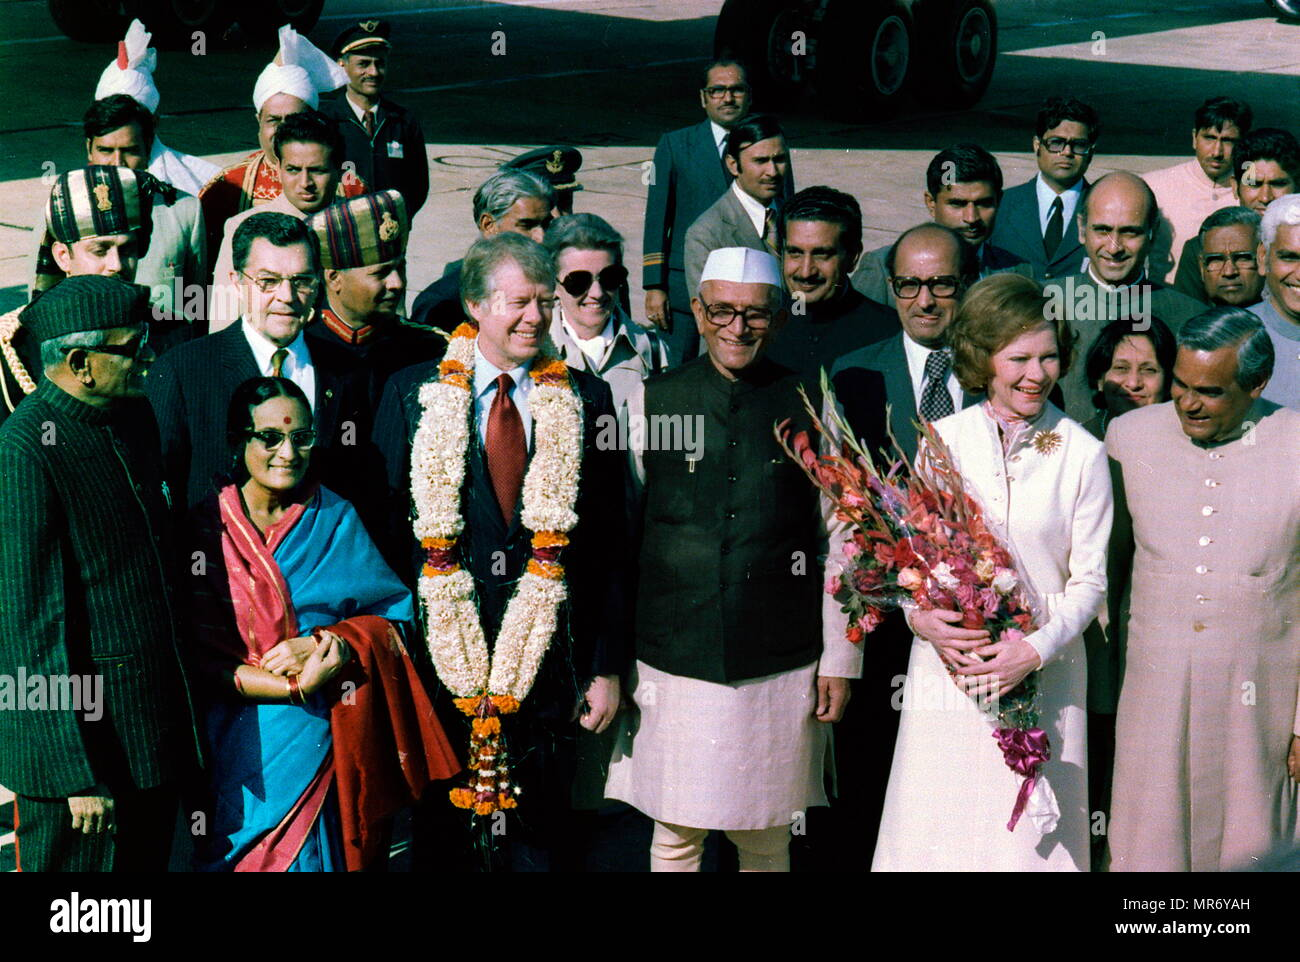 January 1978 visit of US President Jimmy Carter to India. He is welcomed by Prime Minister Moraji Desai standing with Rosalind Carter and Future Indian Prime Minister Atal Bihari Vajpayee, during an arrival ceremony in New Delhi, India - Stock Image